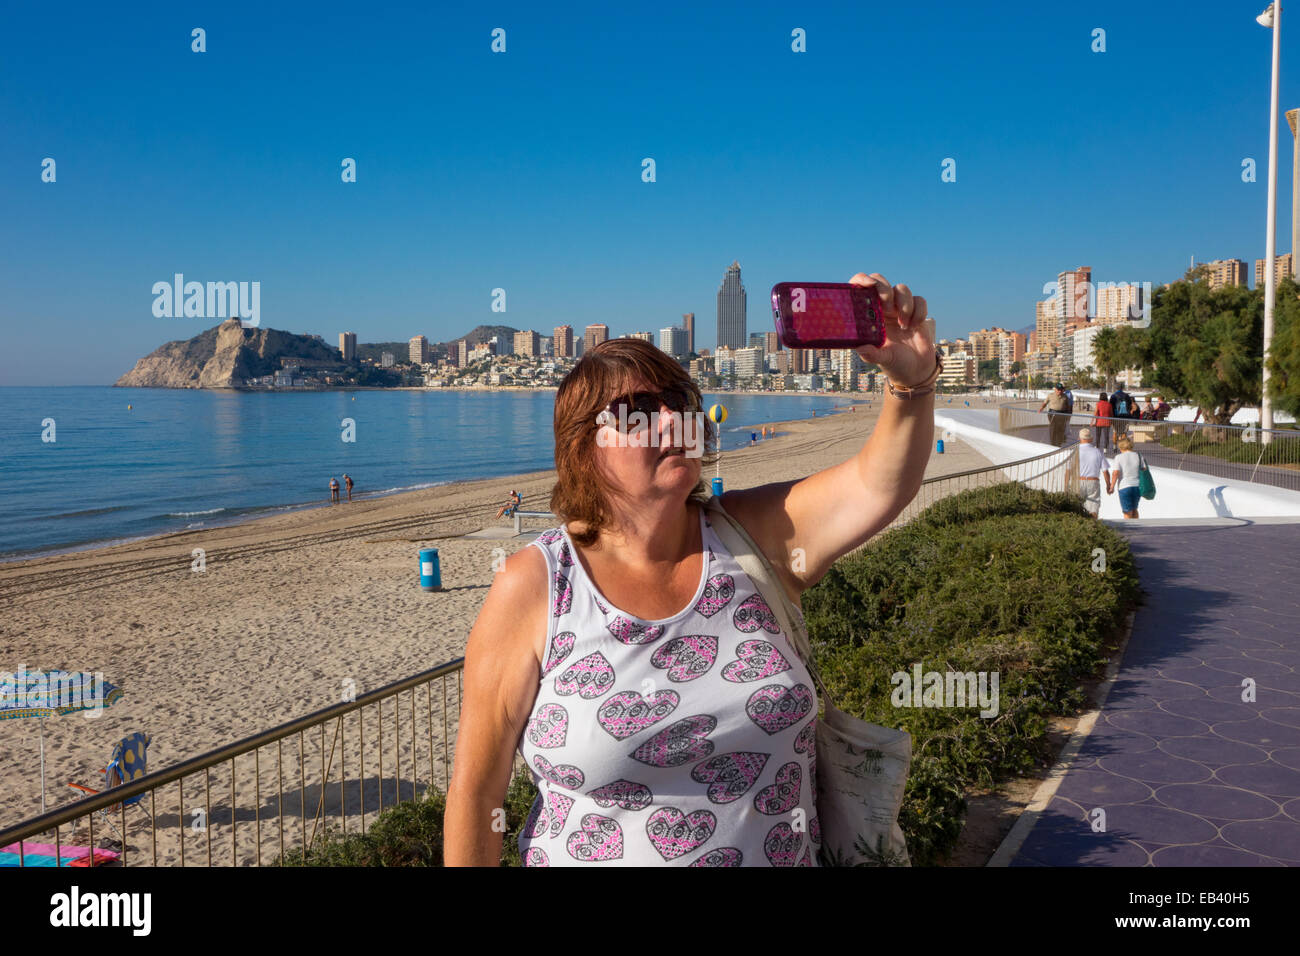 Benidorm, Costa Blanca, Spain, Europe. Woman tourist taking selfie selfy on promenade, with cell, mobile phone. - Stock Image